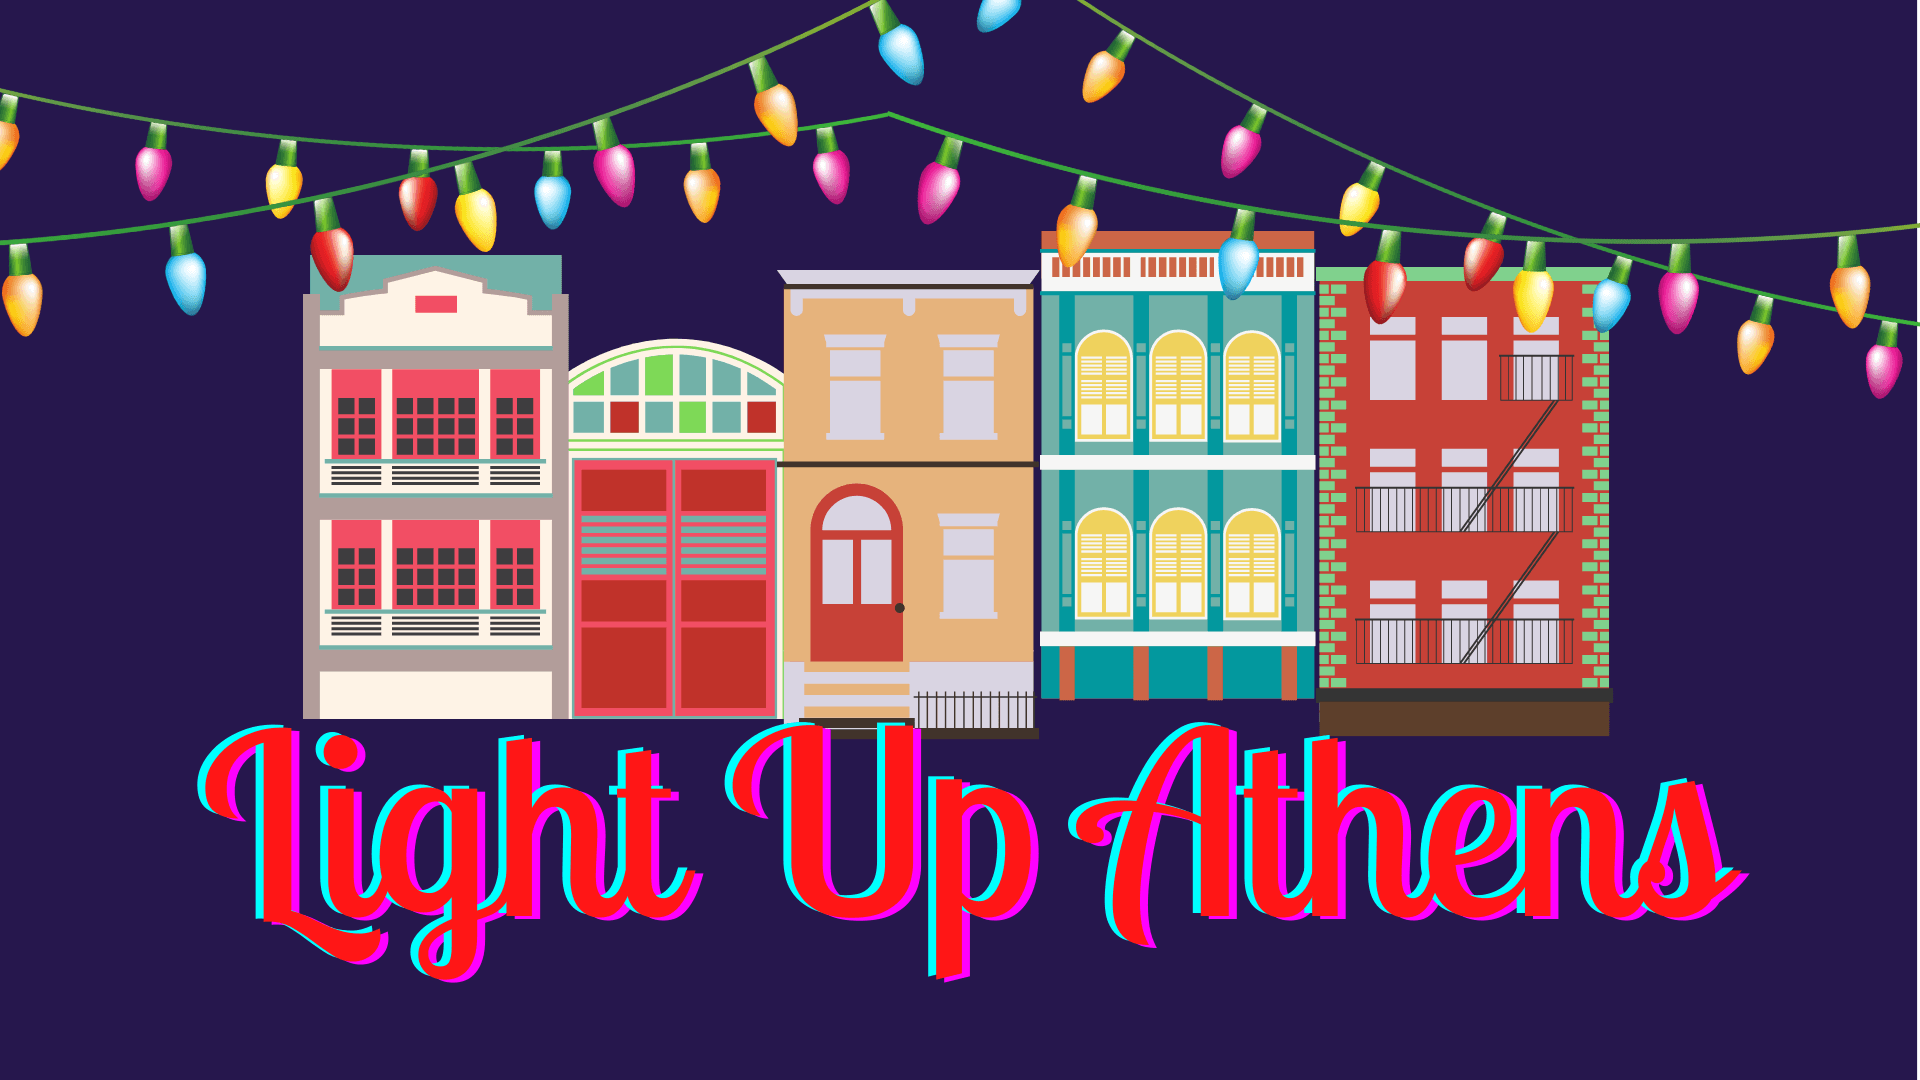 navy background, buildings and holiday lights in forefront